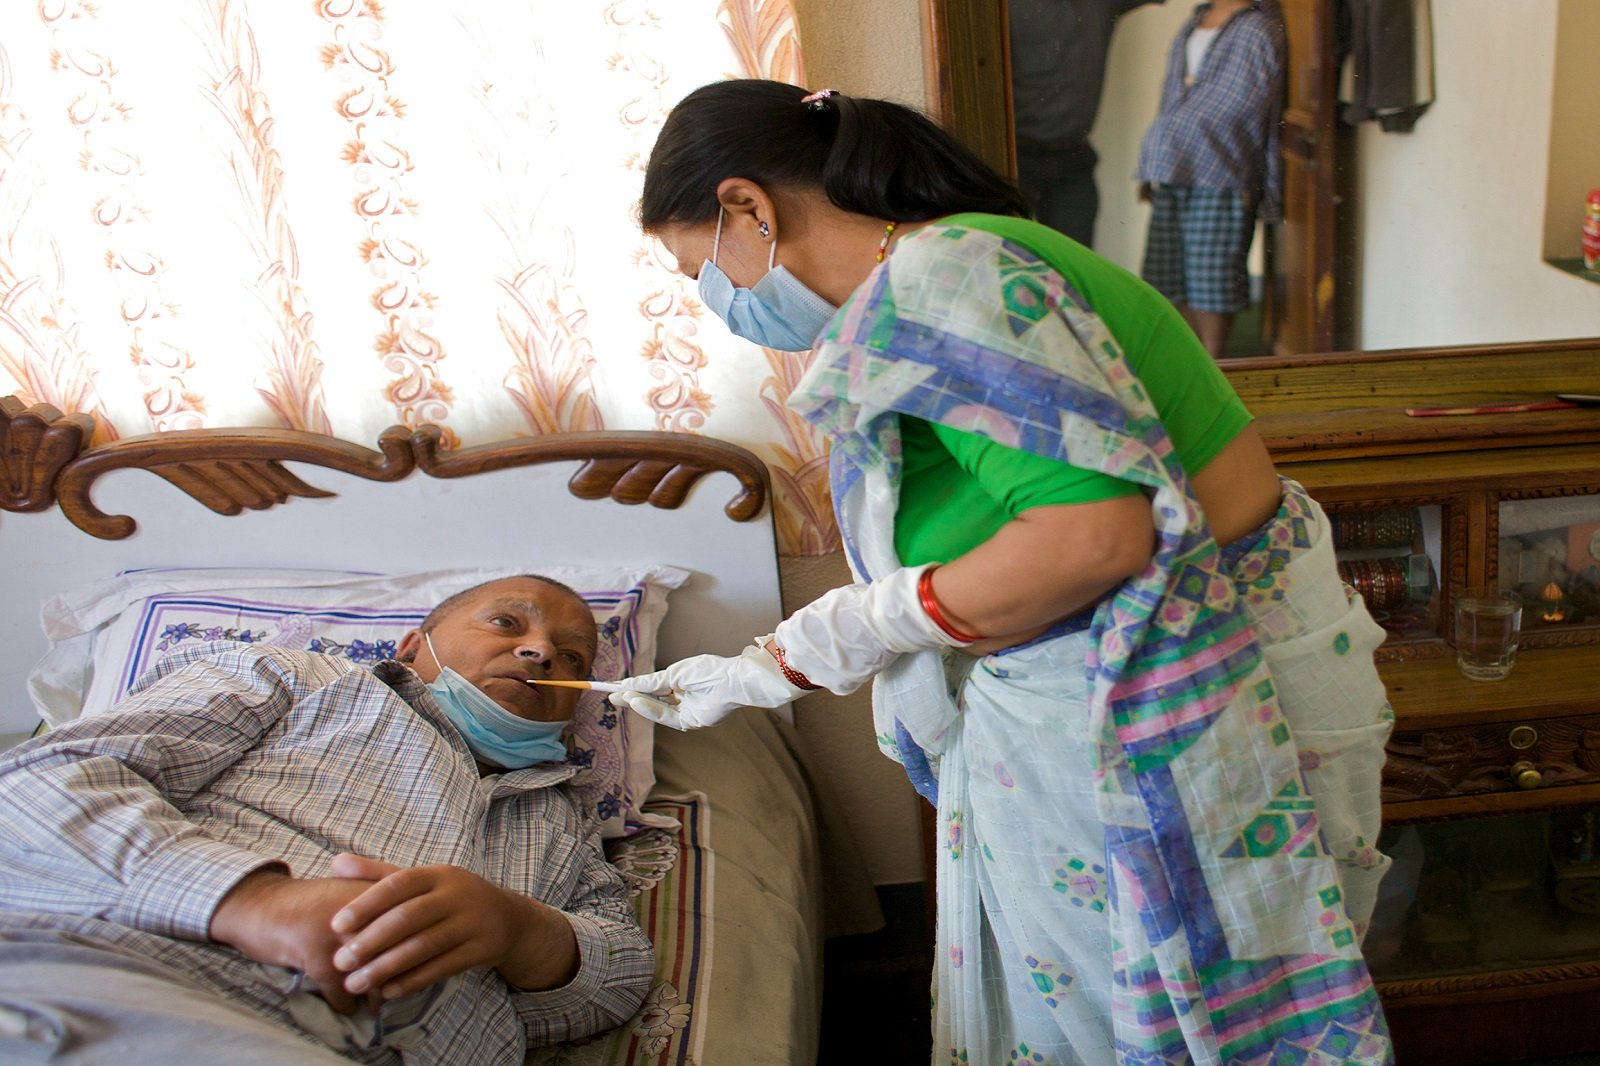 Patient being taken care by health professional